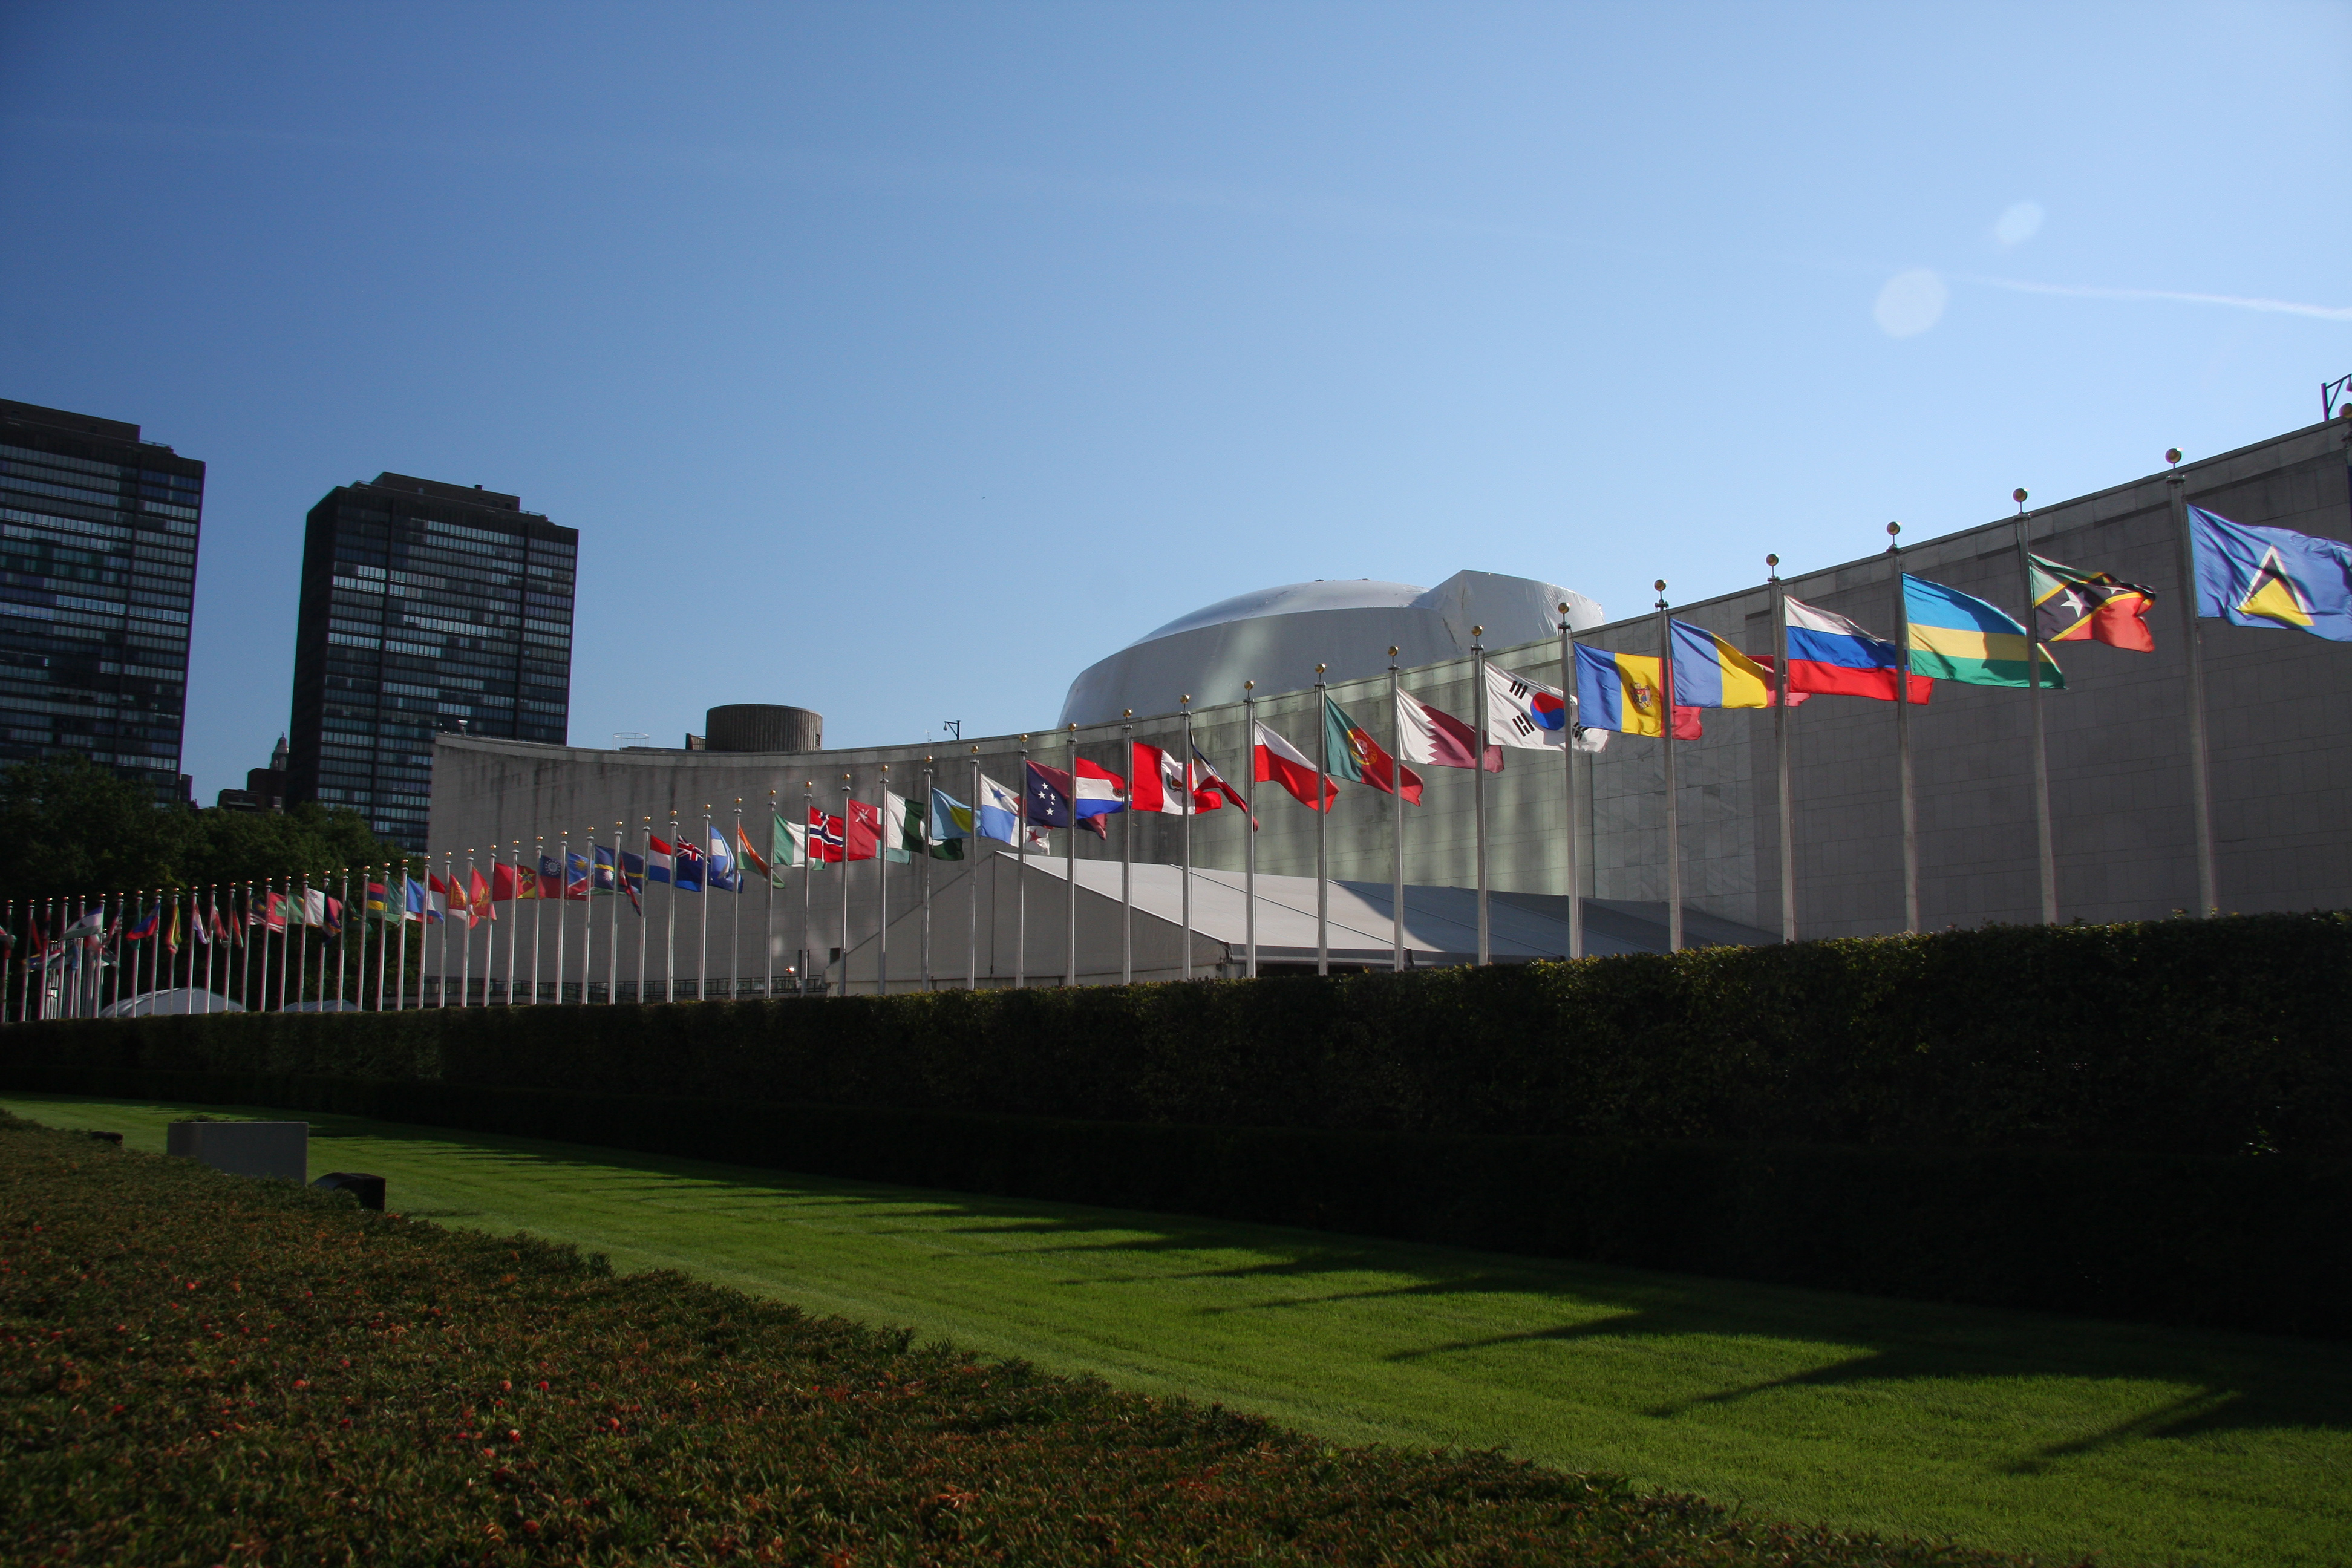 File:UN General Assembly bldg flags.JPG - Wikimedia Commons